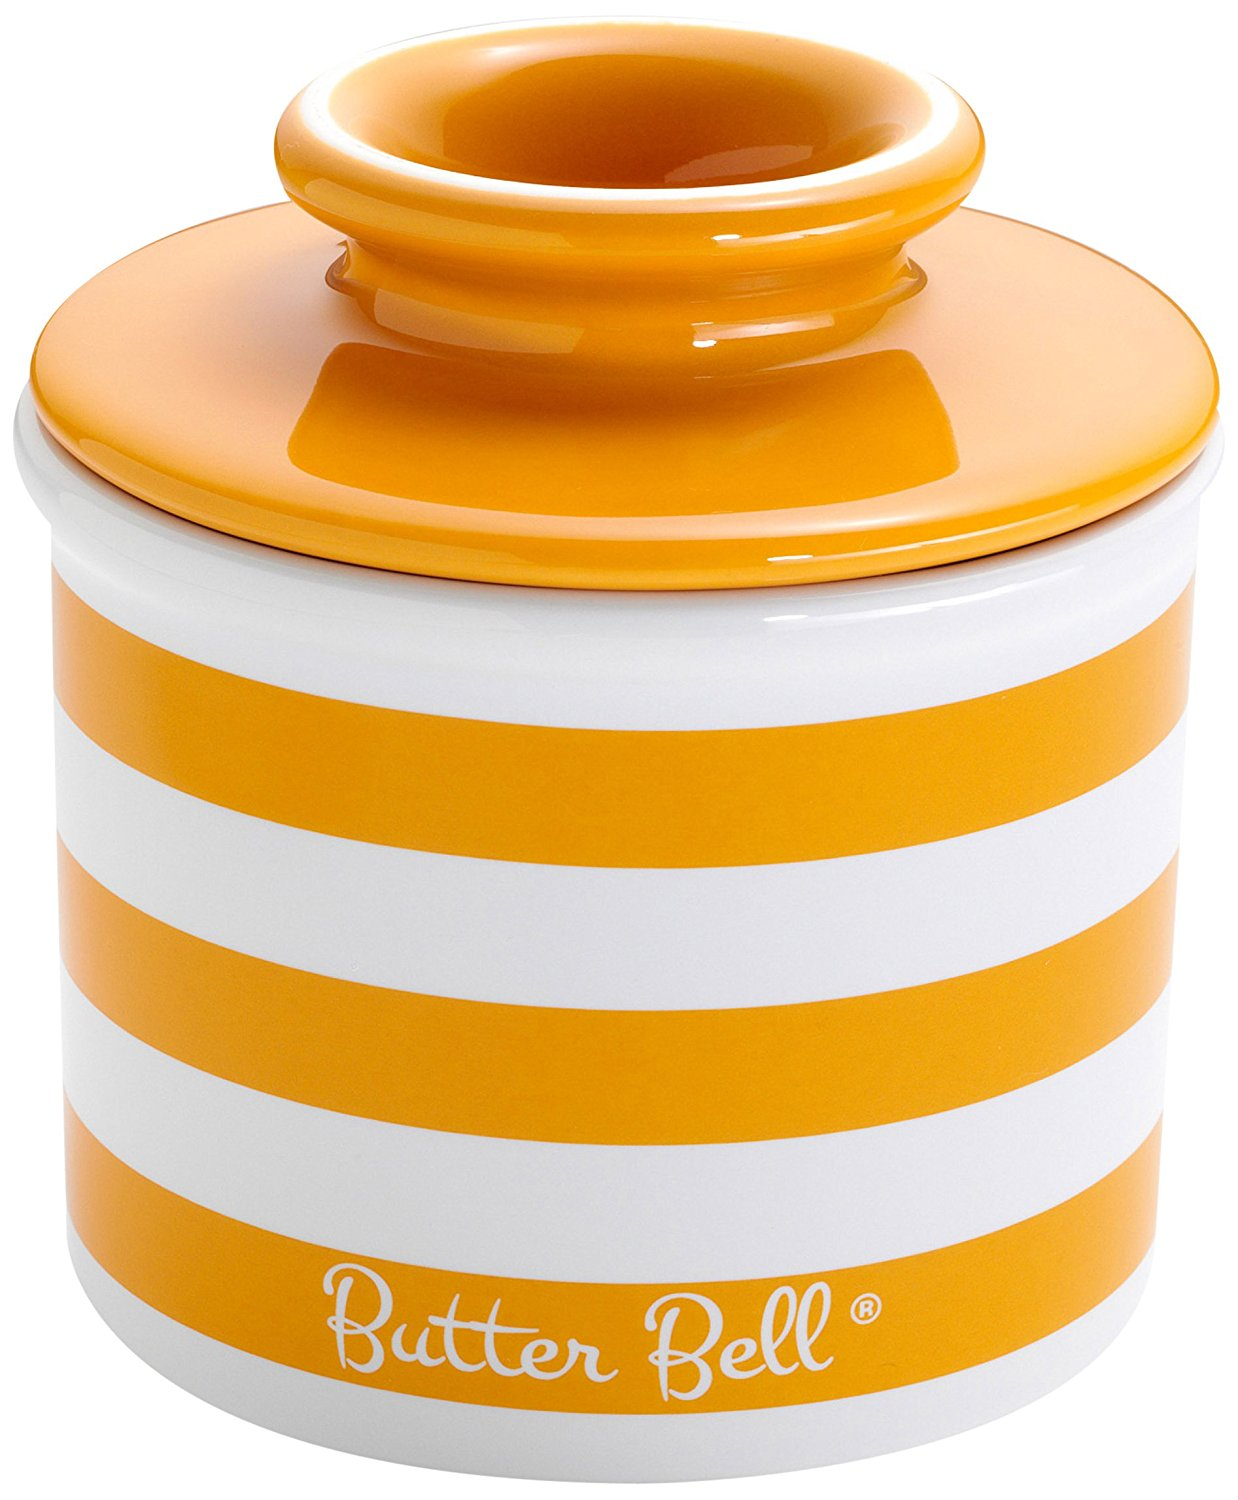 Butter Bell Crock The Original by L. Tremain Container, Cafe.